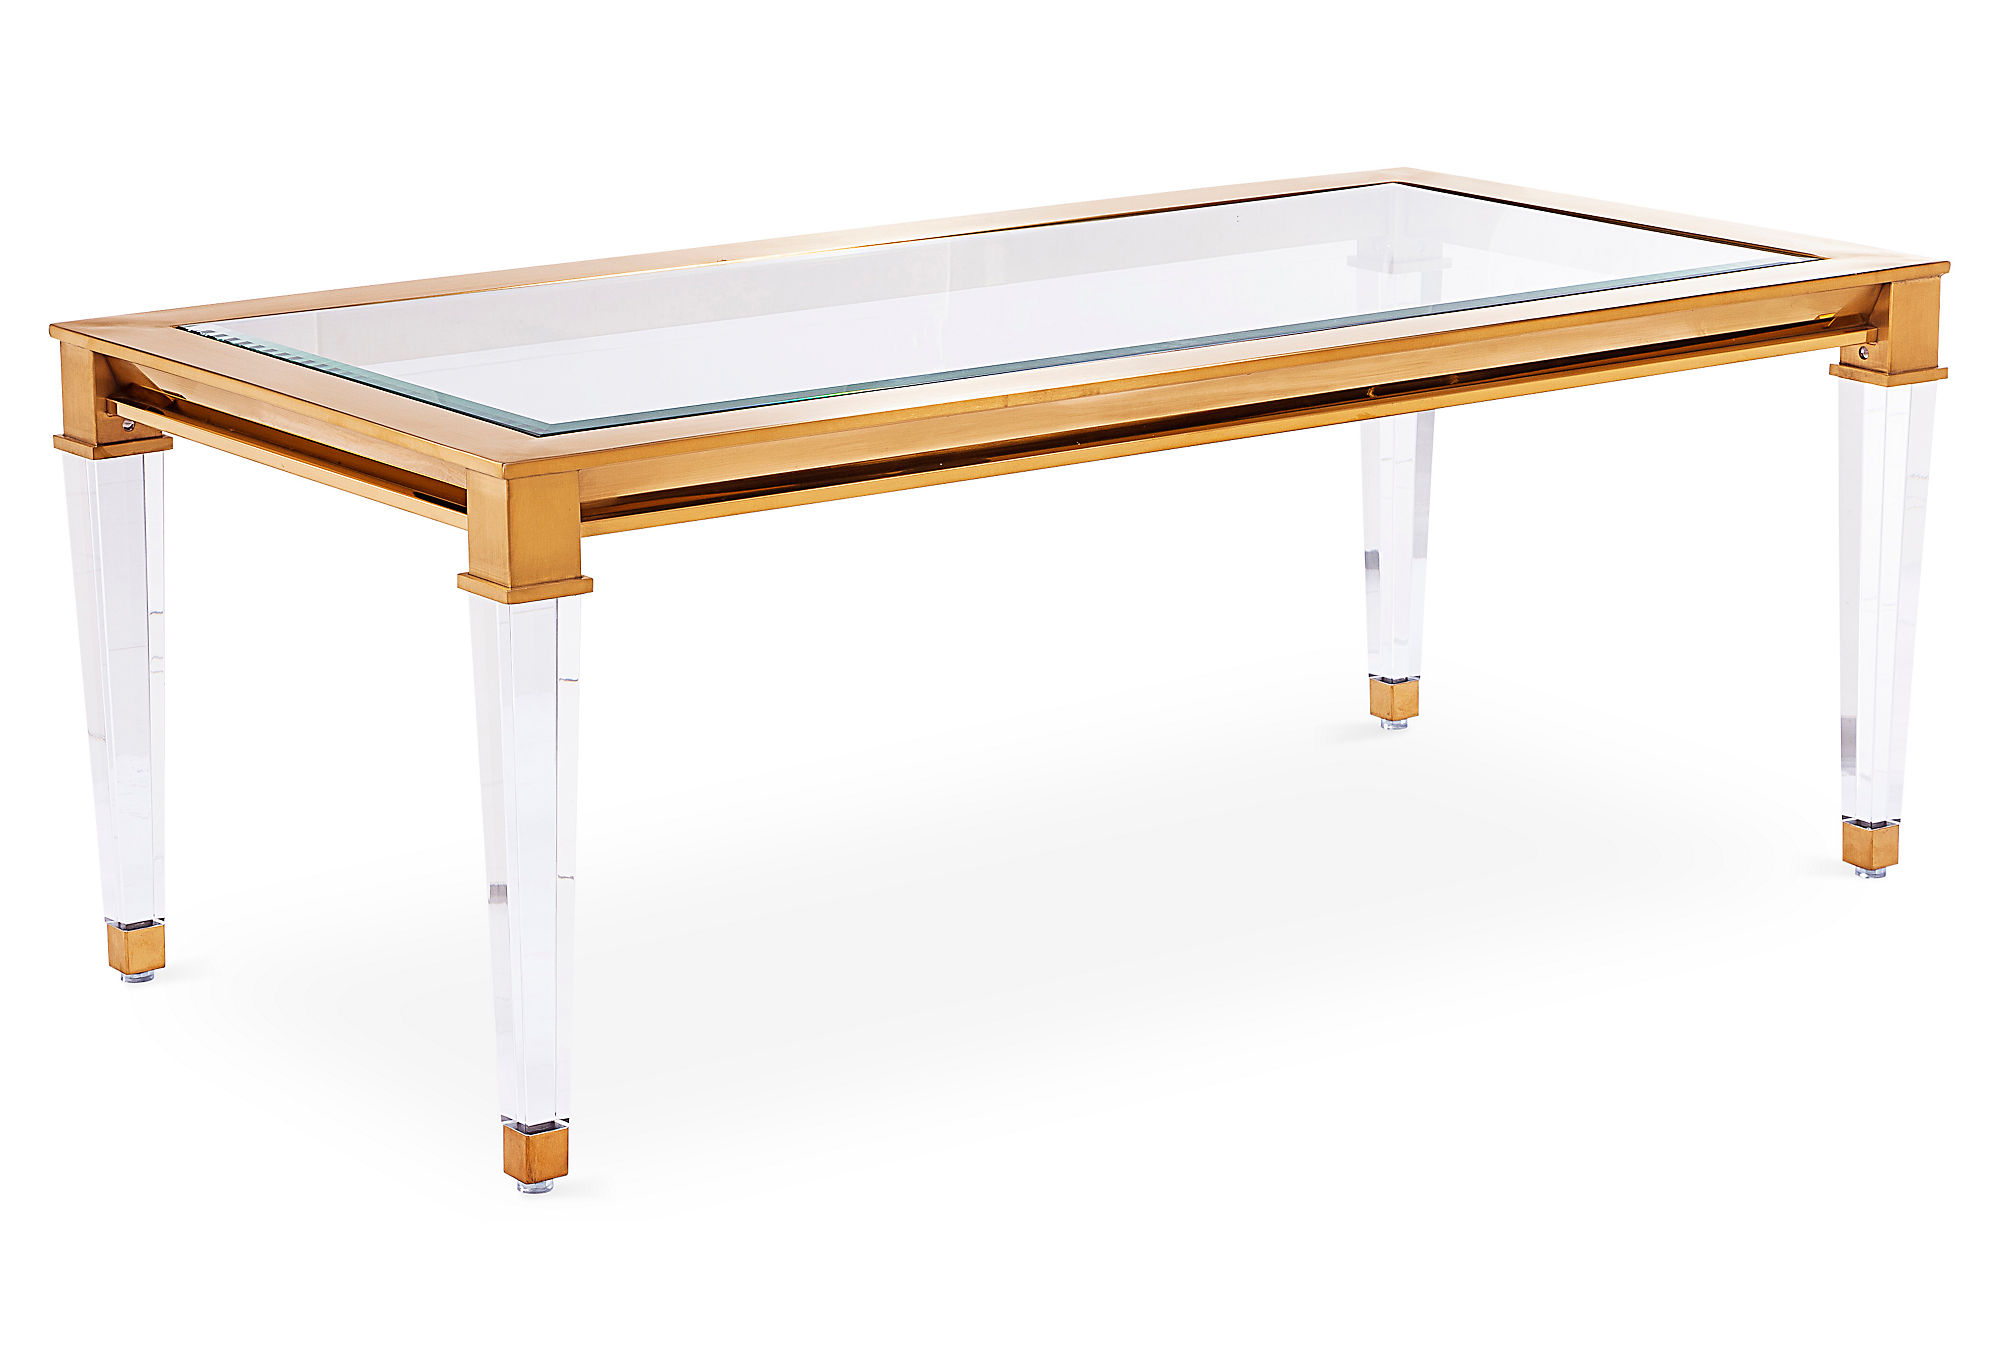 Erica Square Clear Acrylic Coffee Table With Gold Corners by